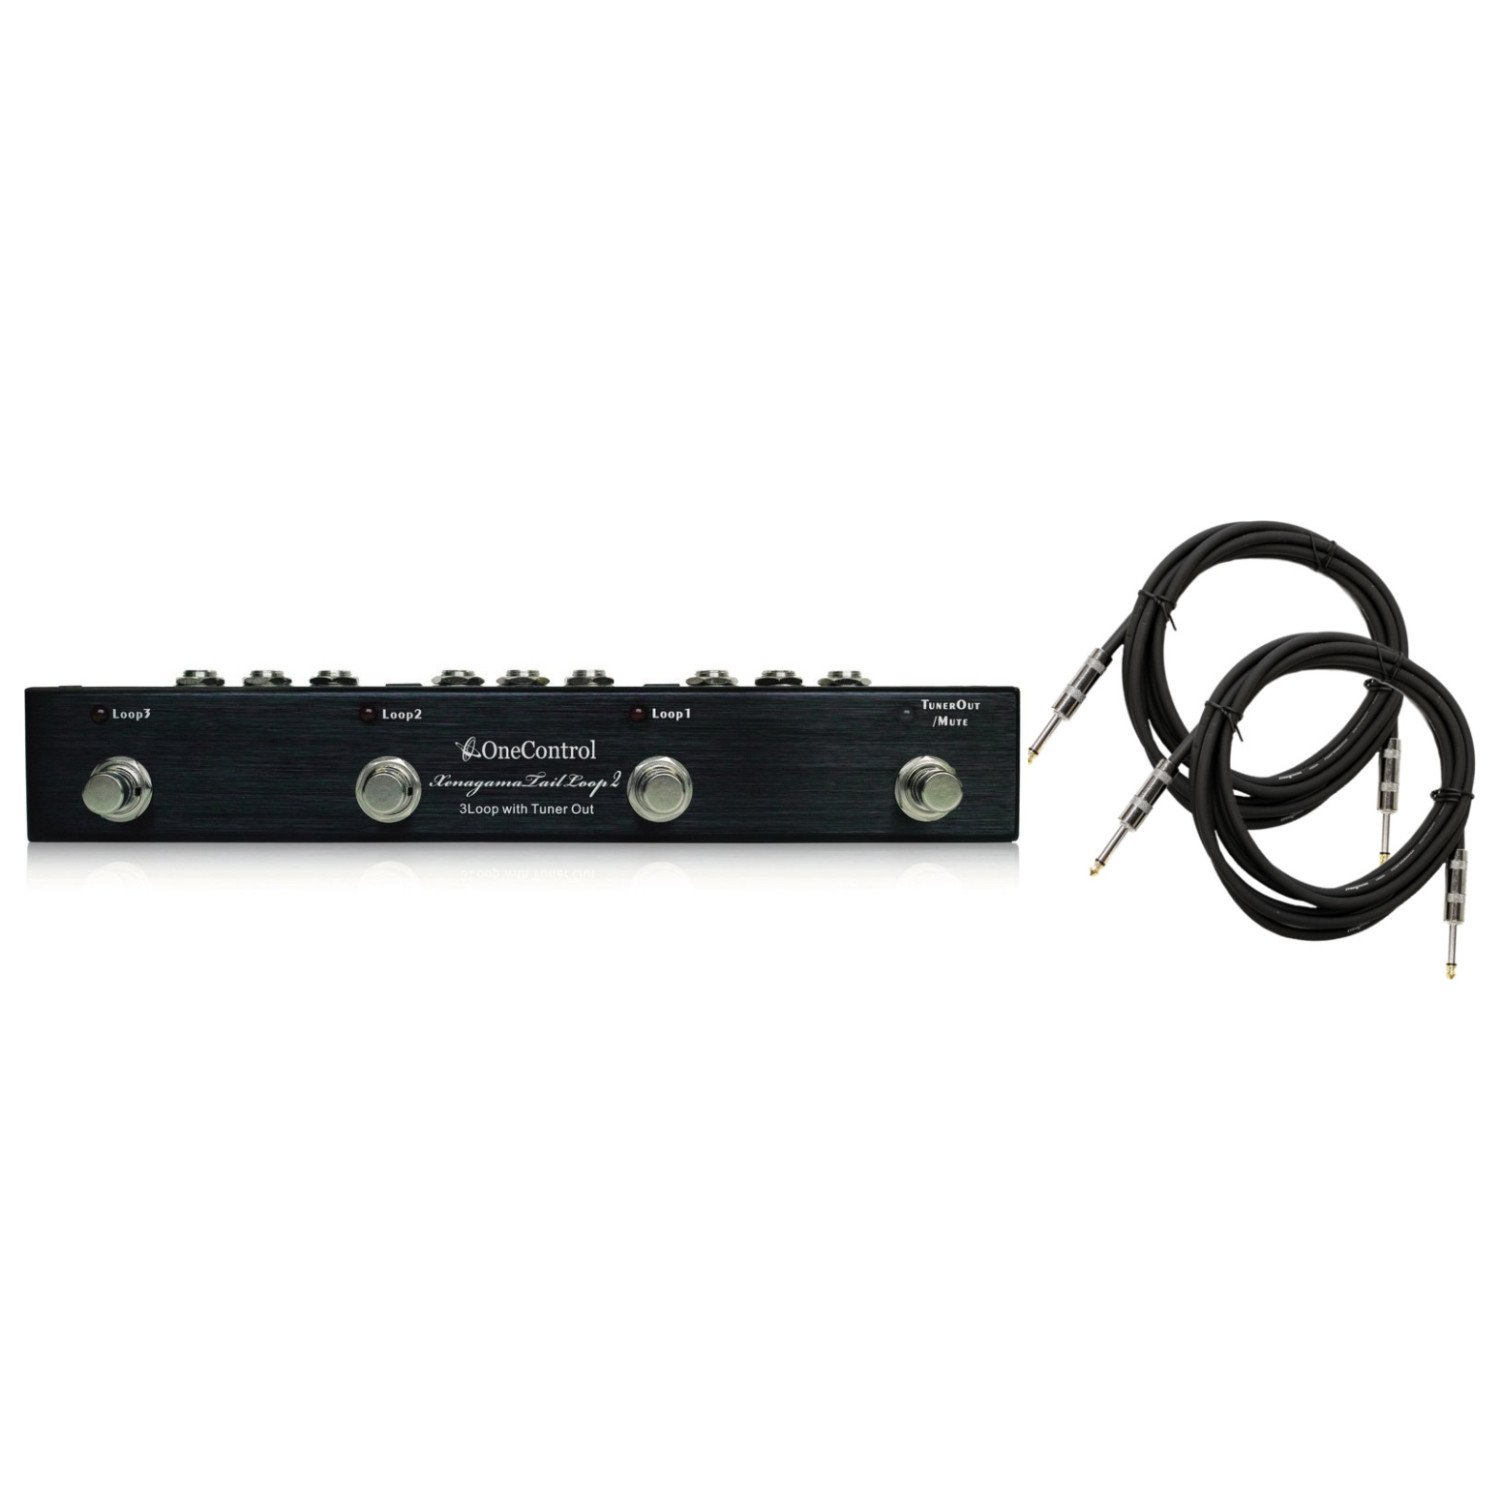 One Control OC3II XENAGAMA TAIL LOOP 2 Pedal Switcher w/ Cables by One Control